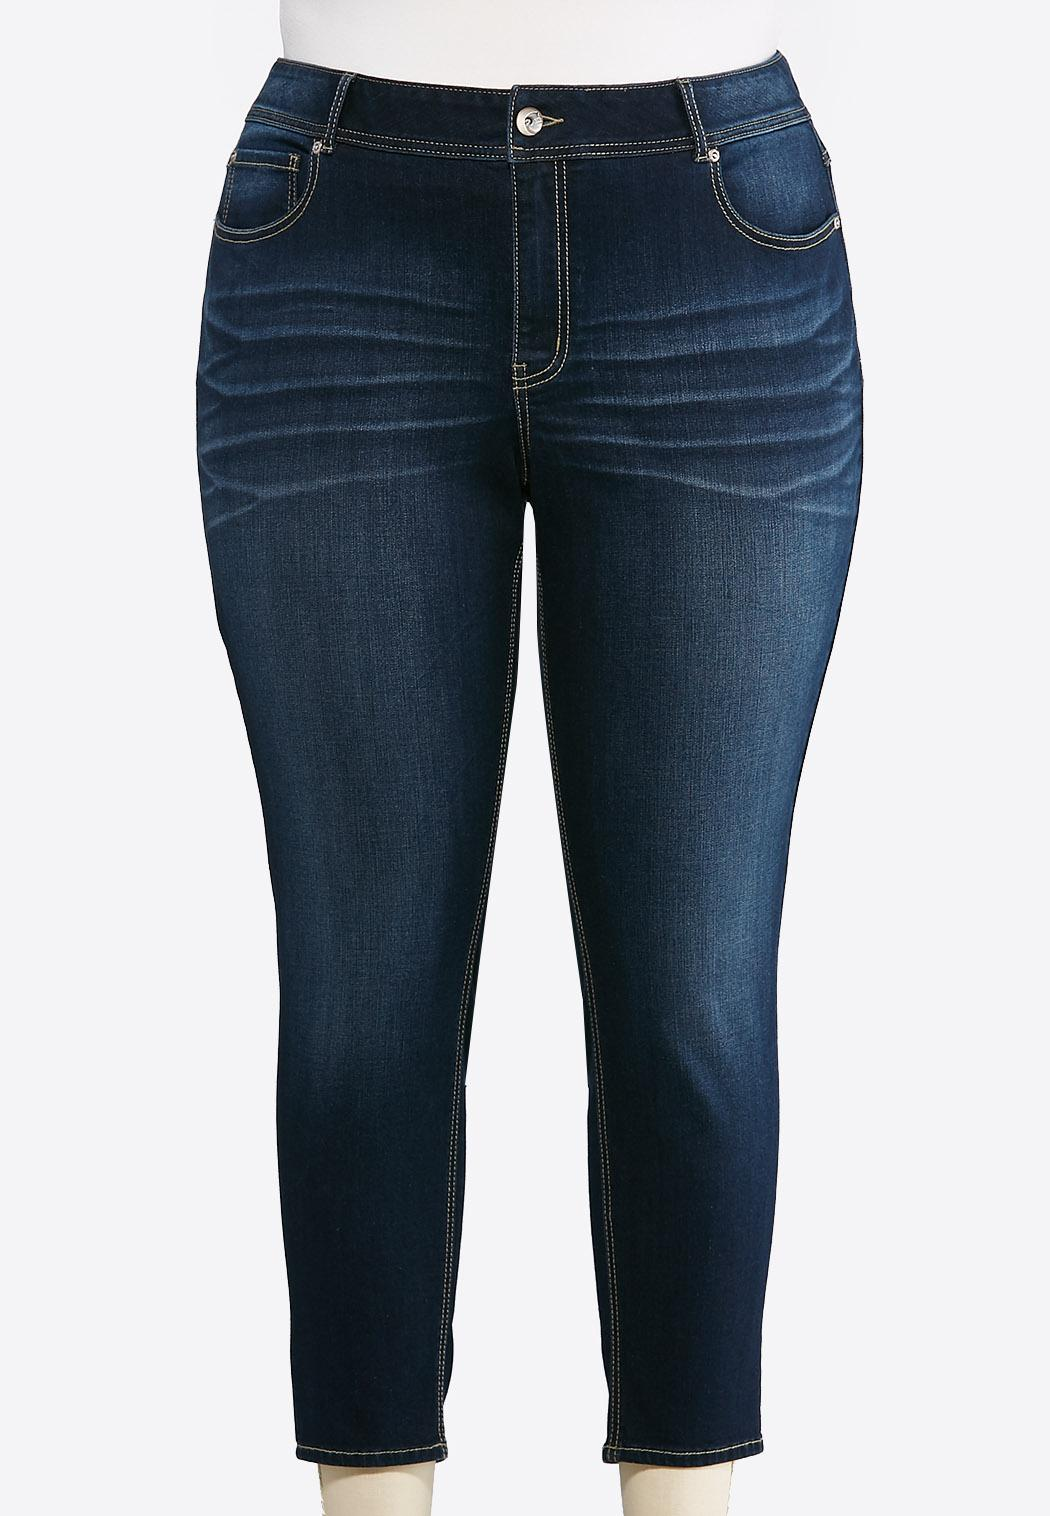 30e956548a3 Plus Size Women s Jeans  Women s Denim